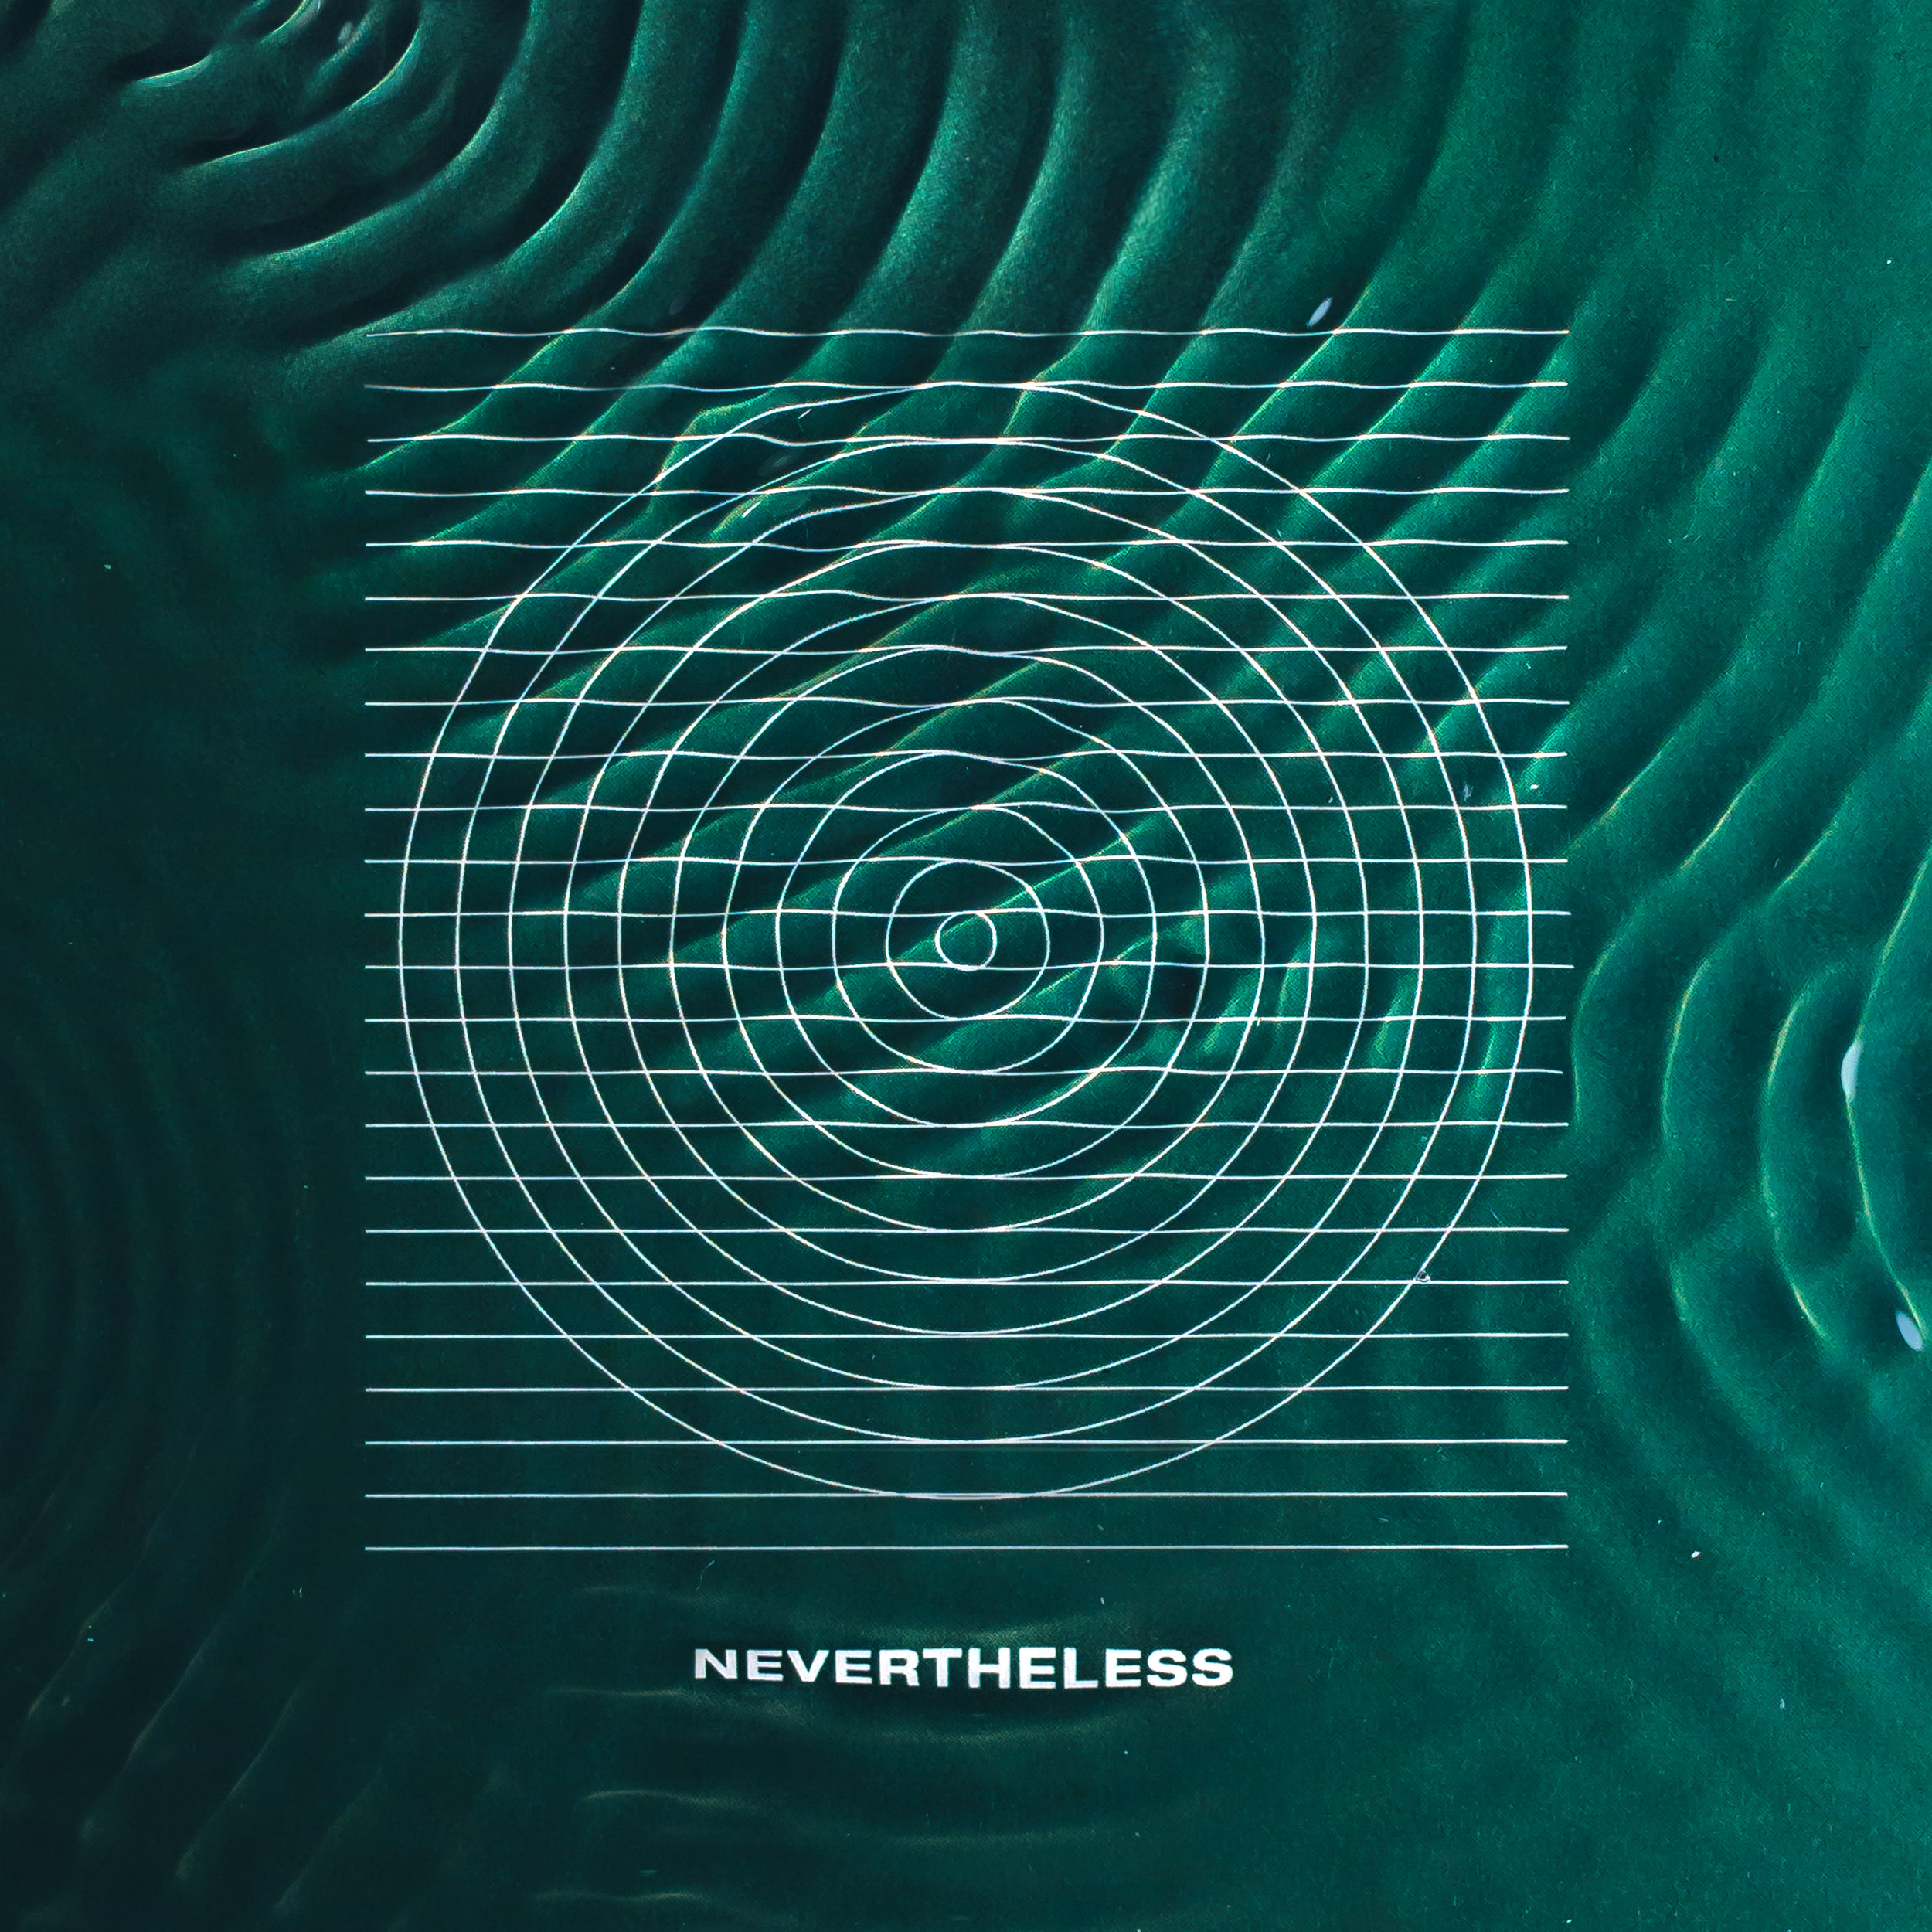 Nevertheless_Digital Square_no logo.jpg